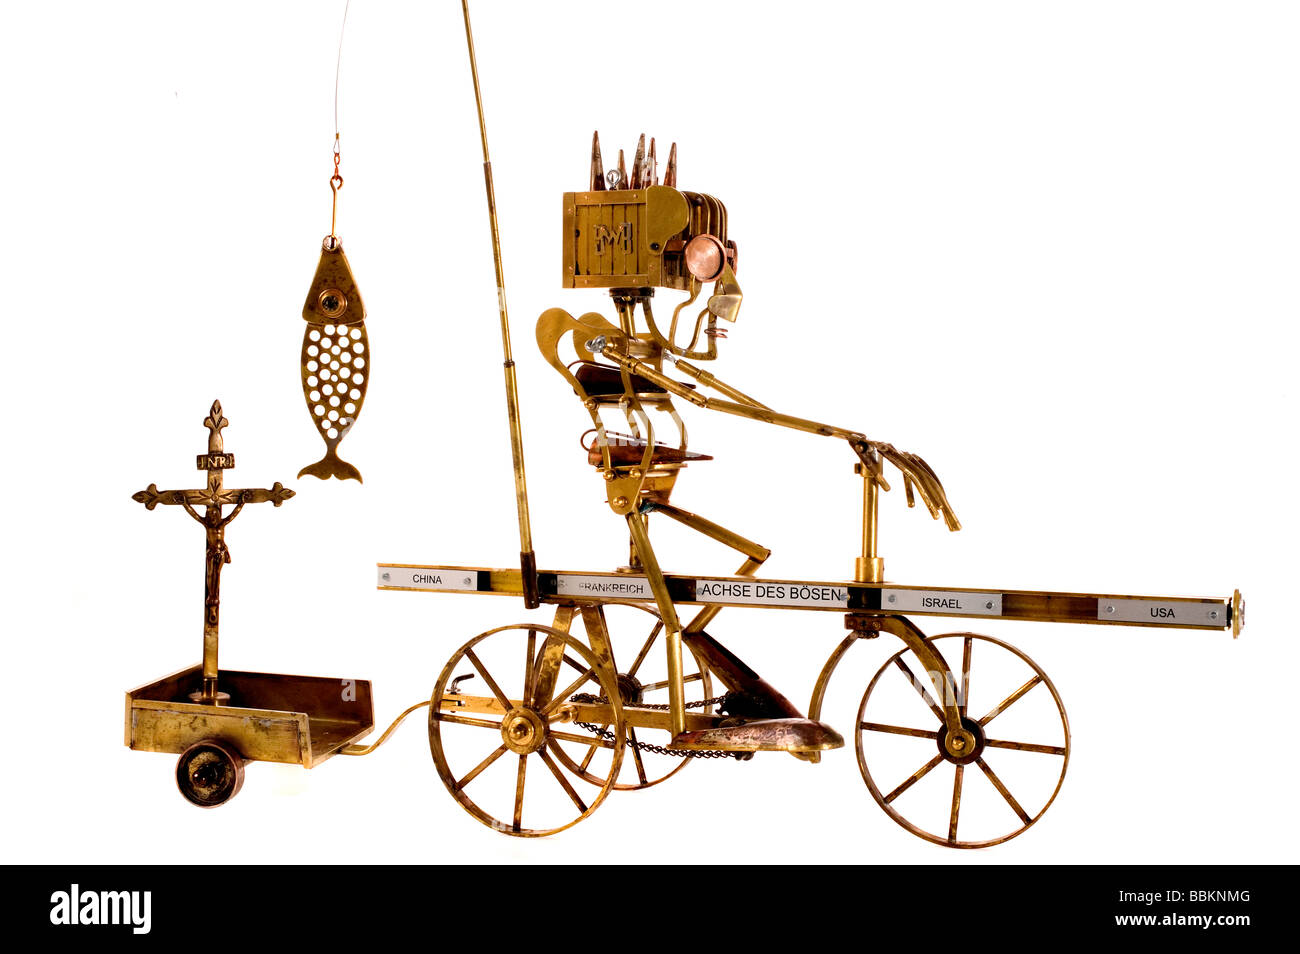 marionettes manufactured manually with different metals, political caricatures, work of art, workmanship, George - Stock Image